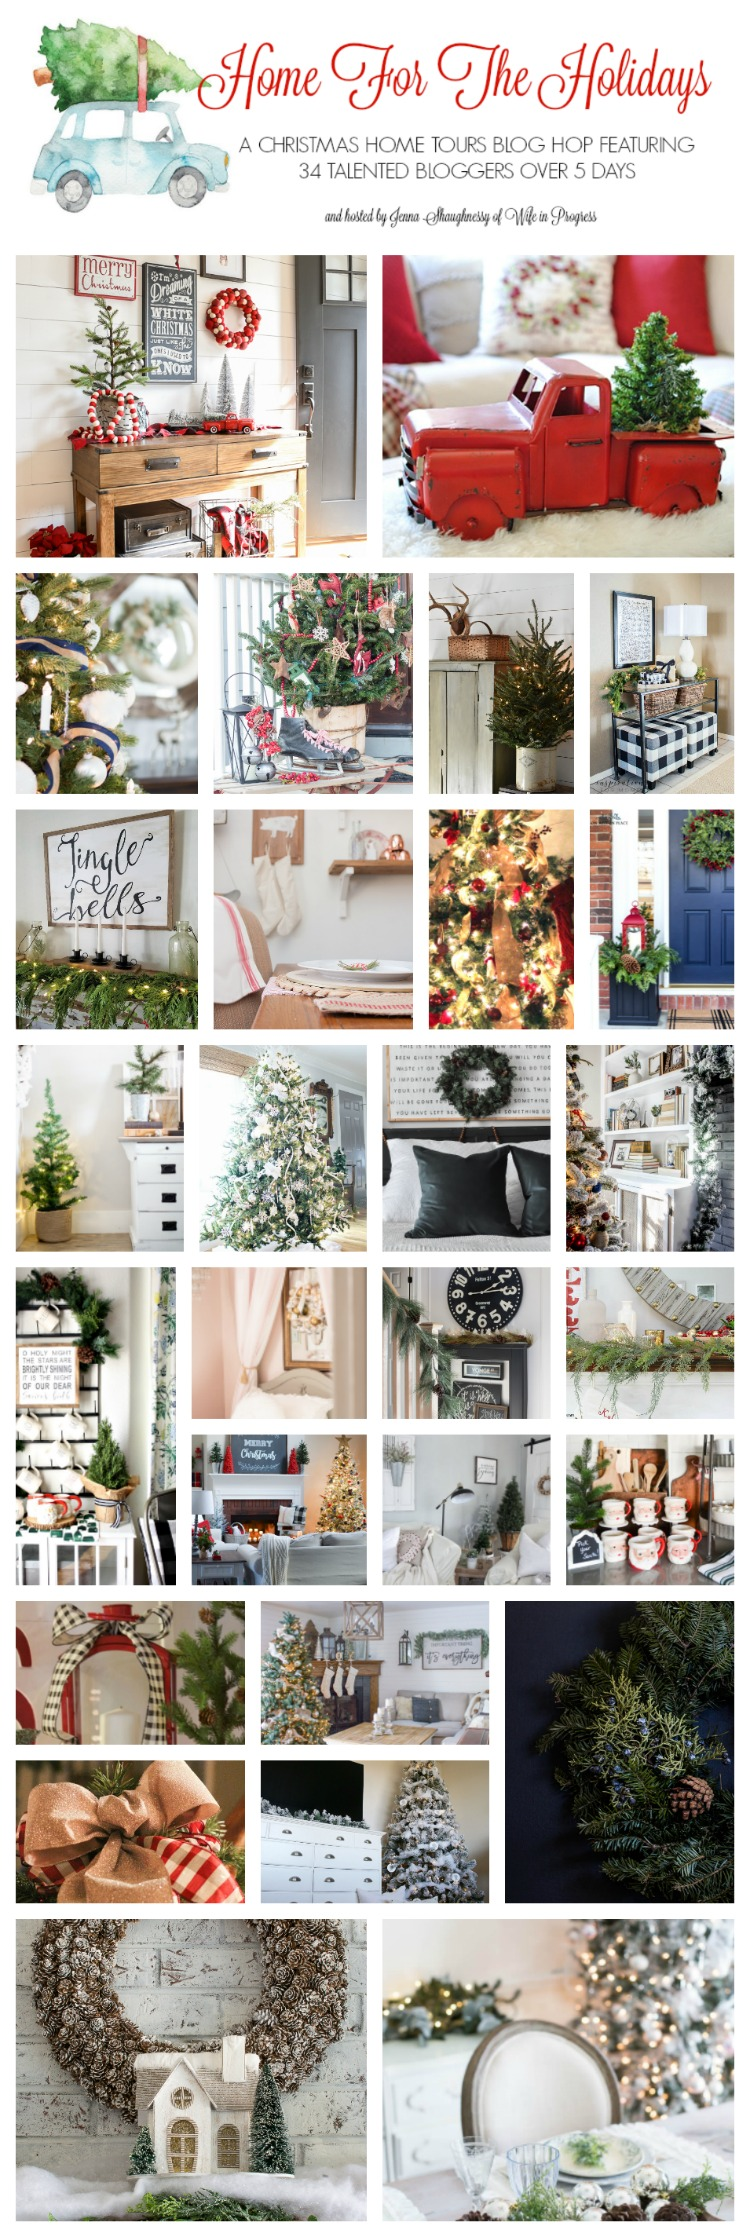 Home For the Holidays Blogger Christmas Home Tour